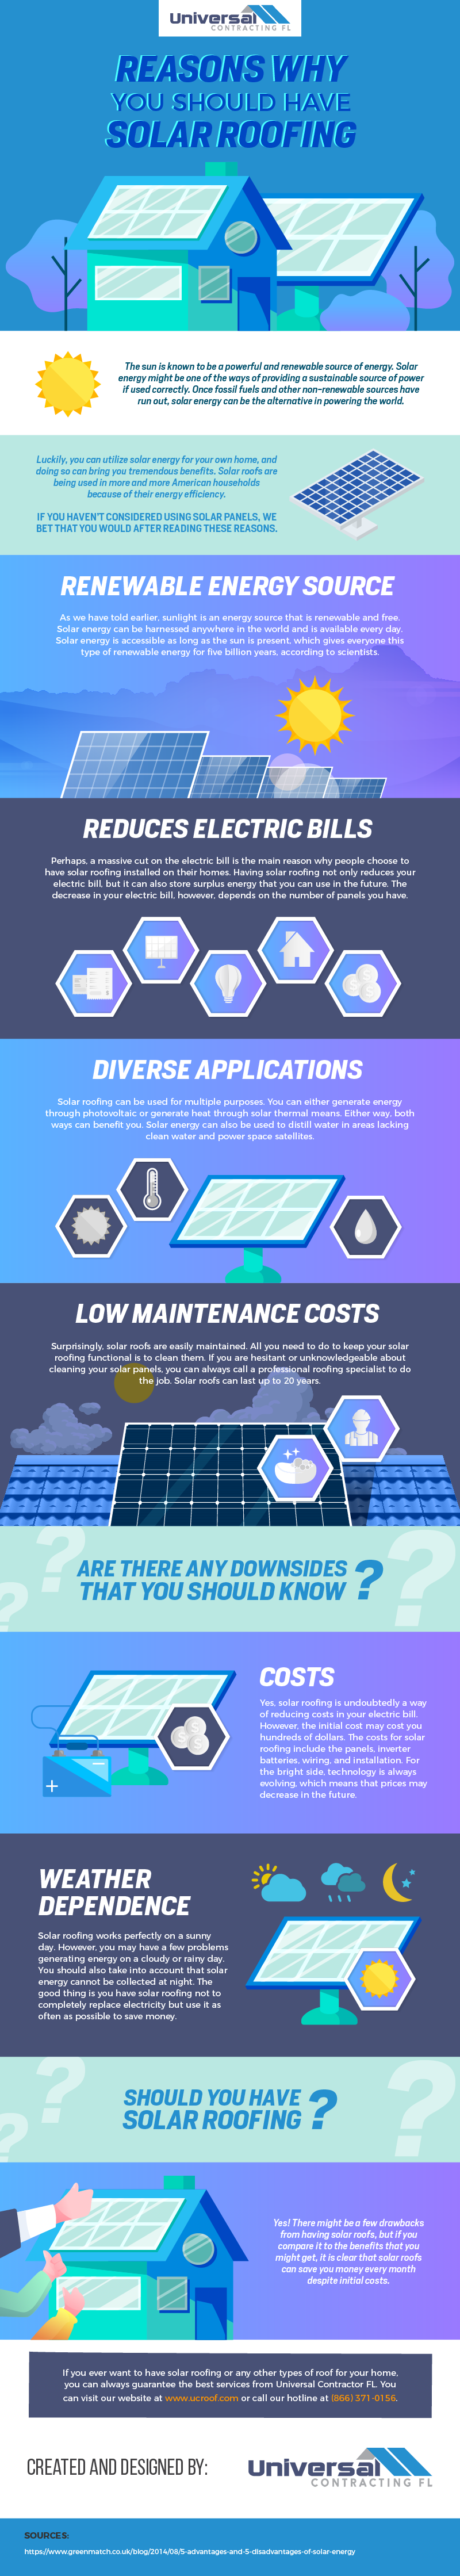 The Reasons Why You Should Have Solar Roofing #infographic